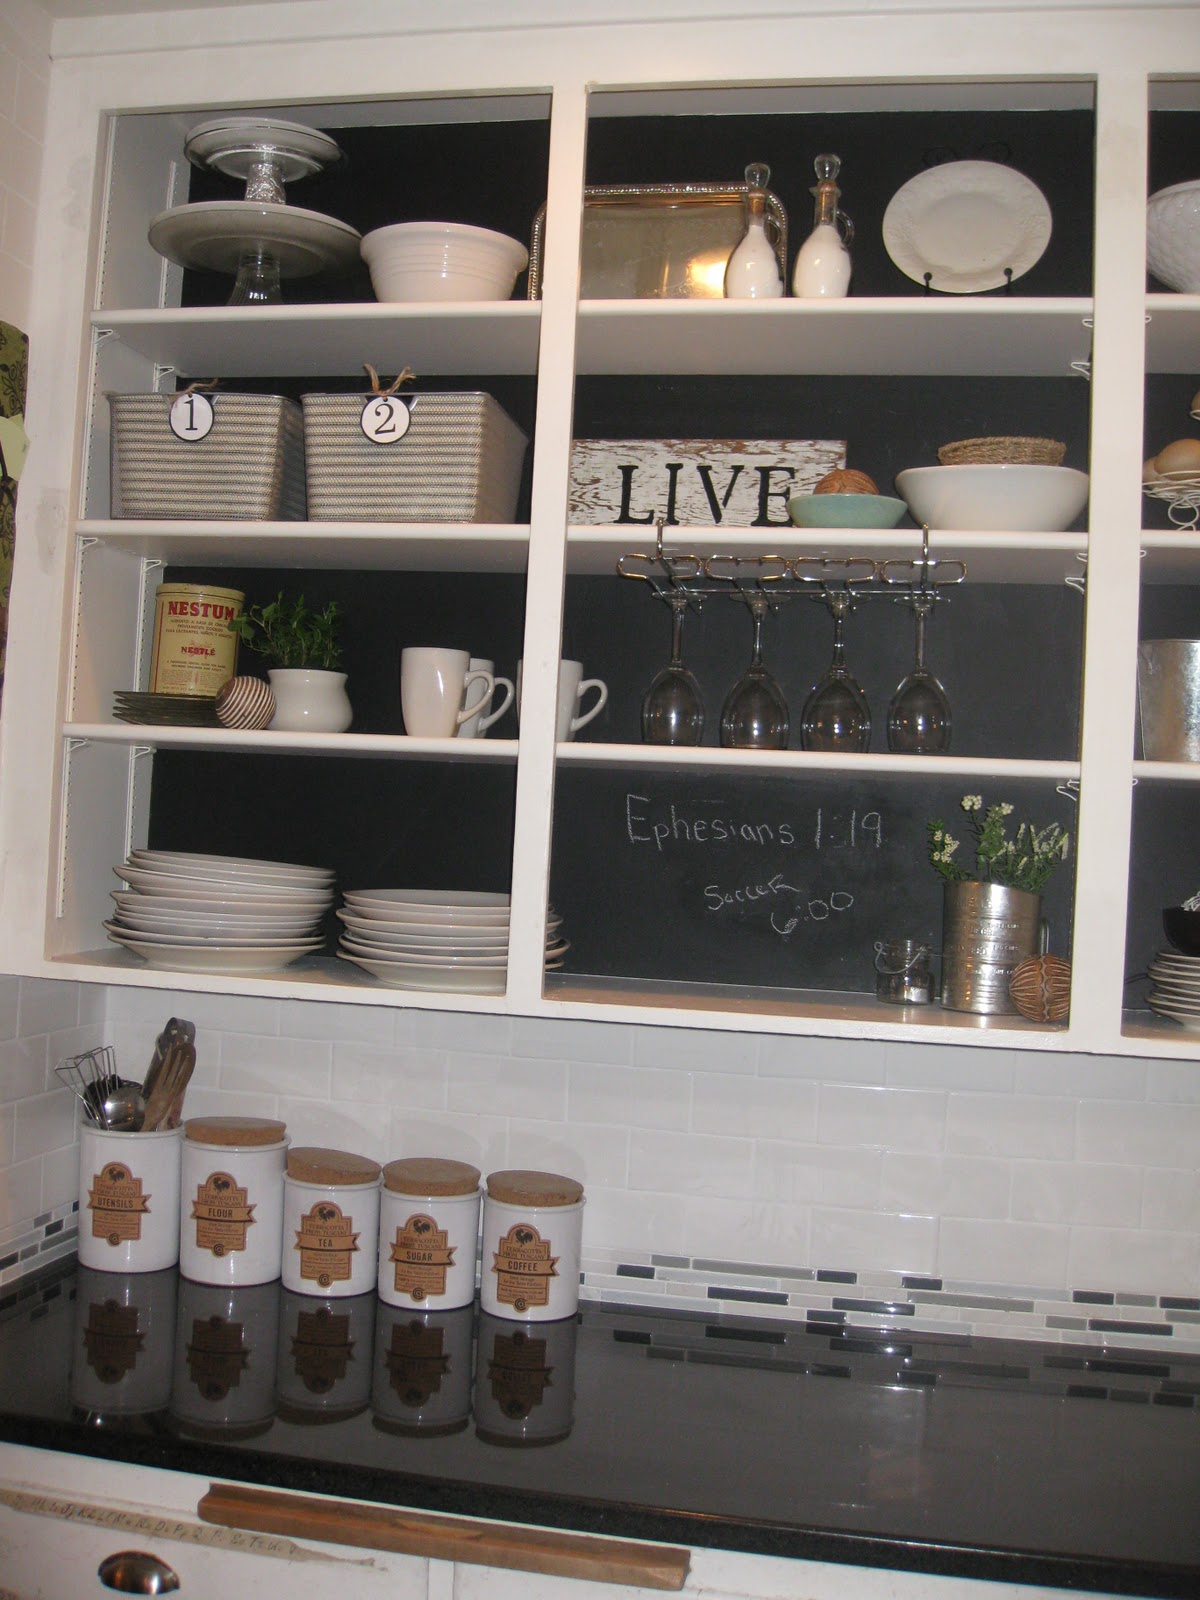 kitchen cabinets shelves ideas diy chalkboard cabinets creatively living outside the box 6383